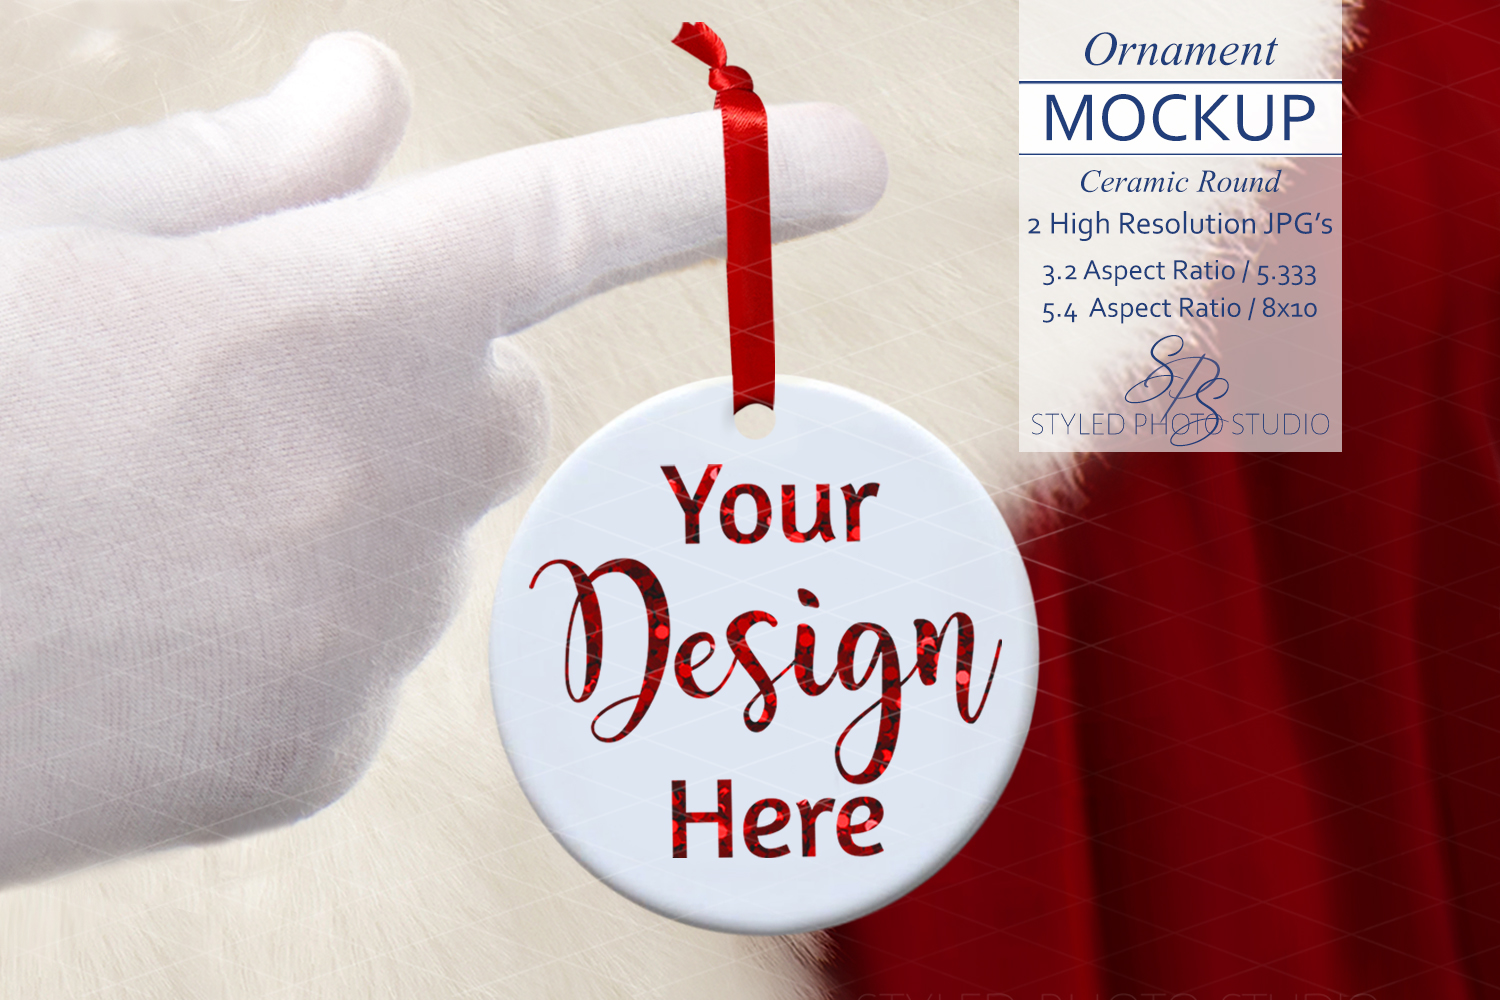 Round Christmas Ornament Mockup w/ Santa 3.2 / 5.4 A Ratio example image 2